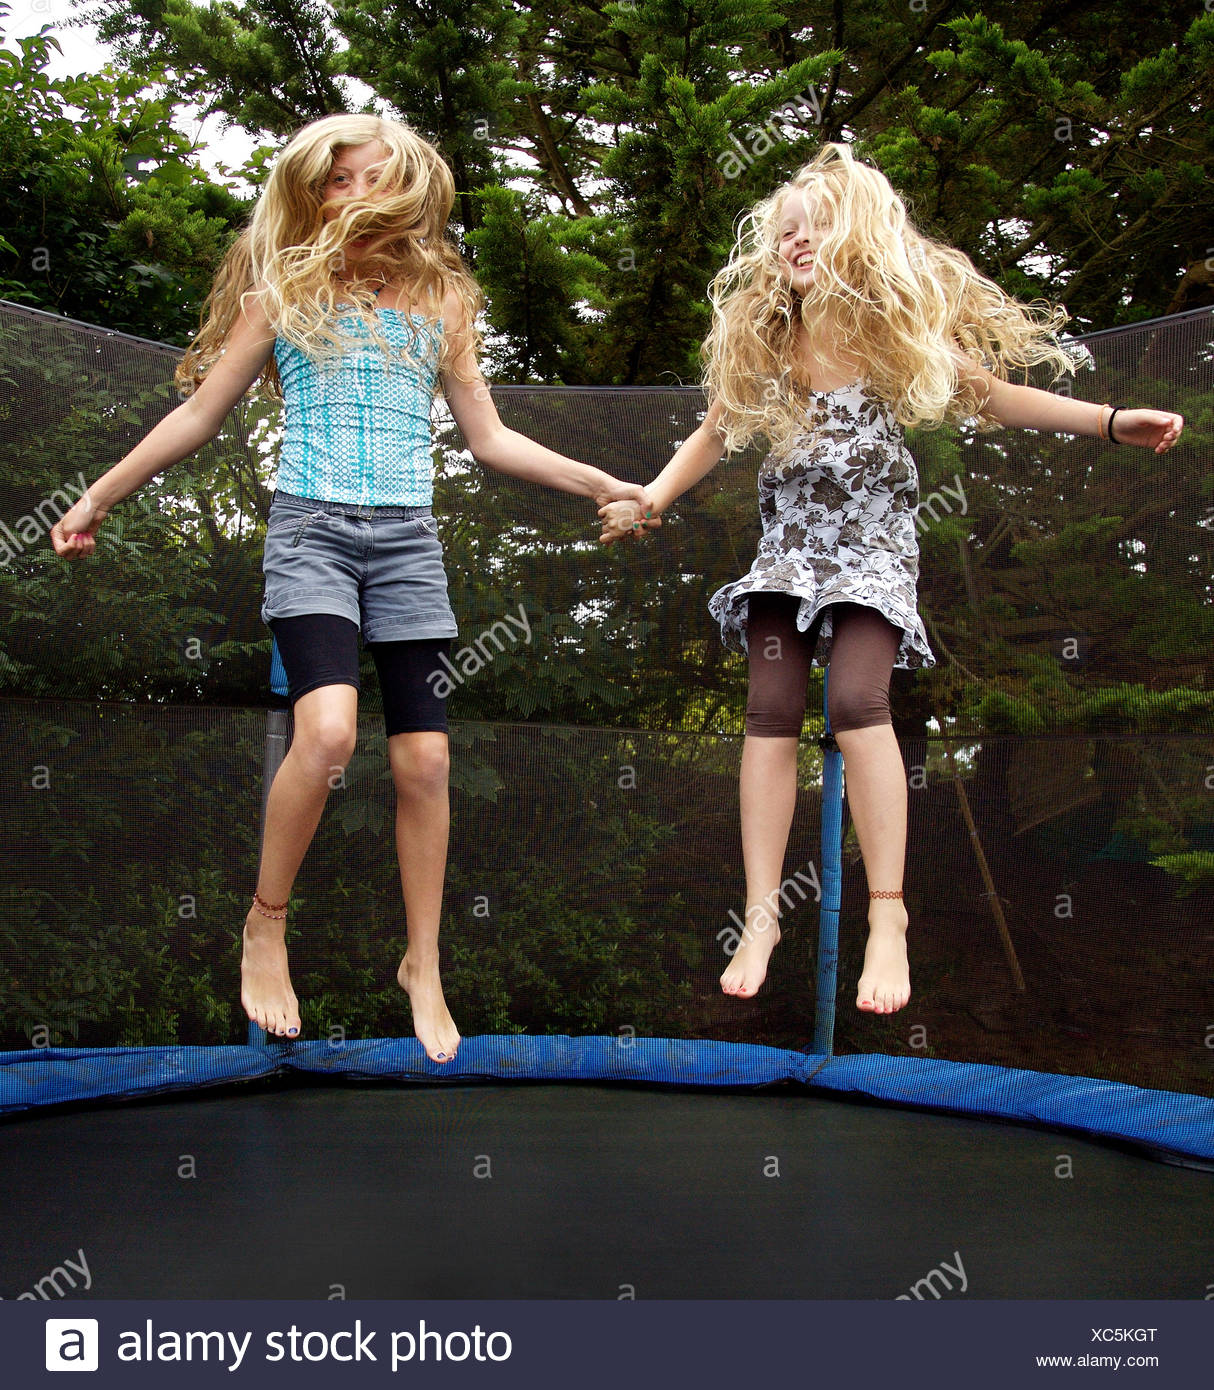 Girls jumping on trampoline outdoors Stock Photo